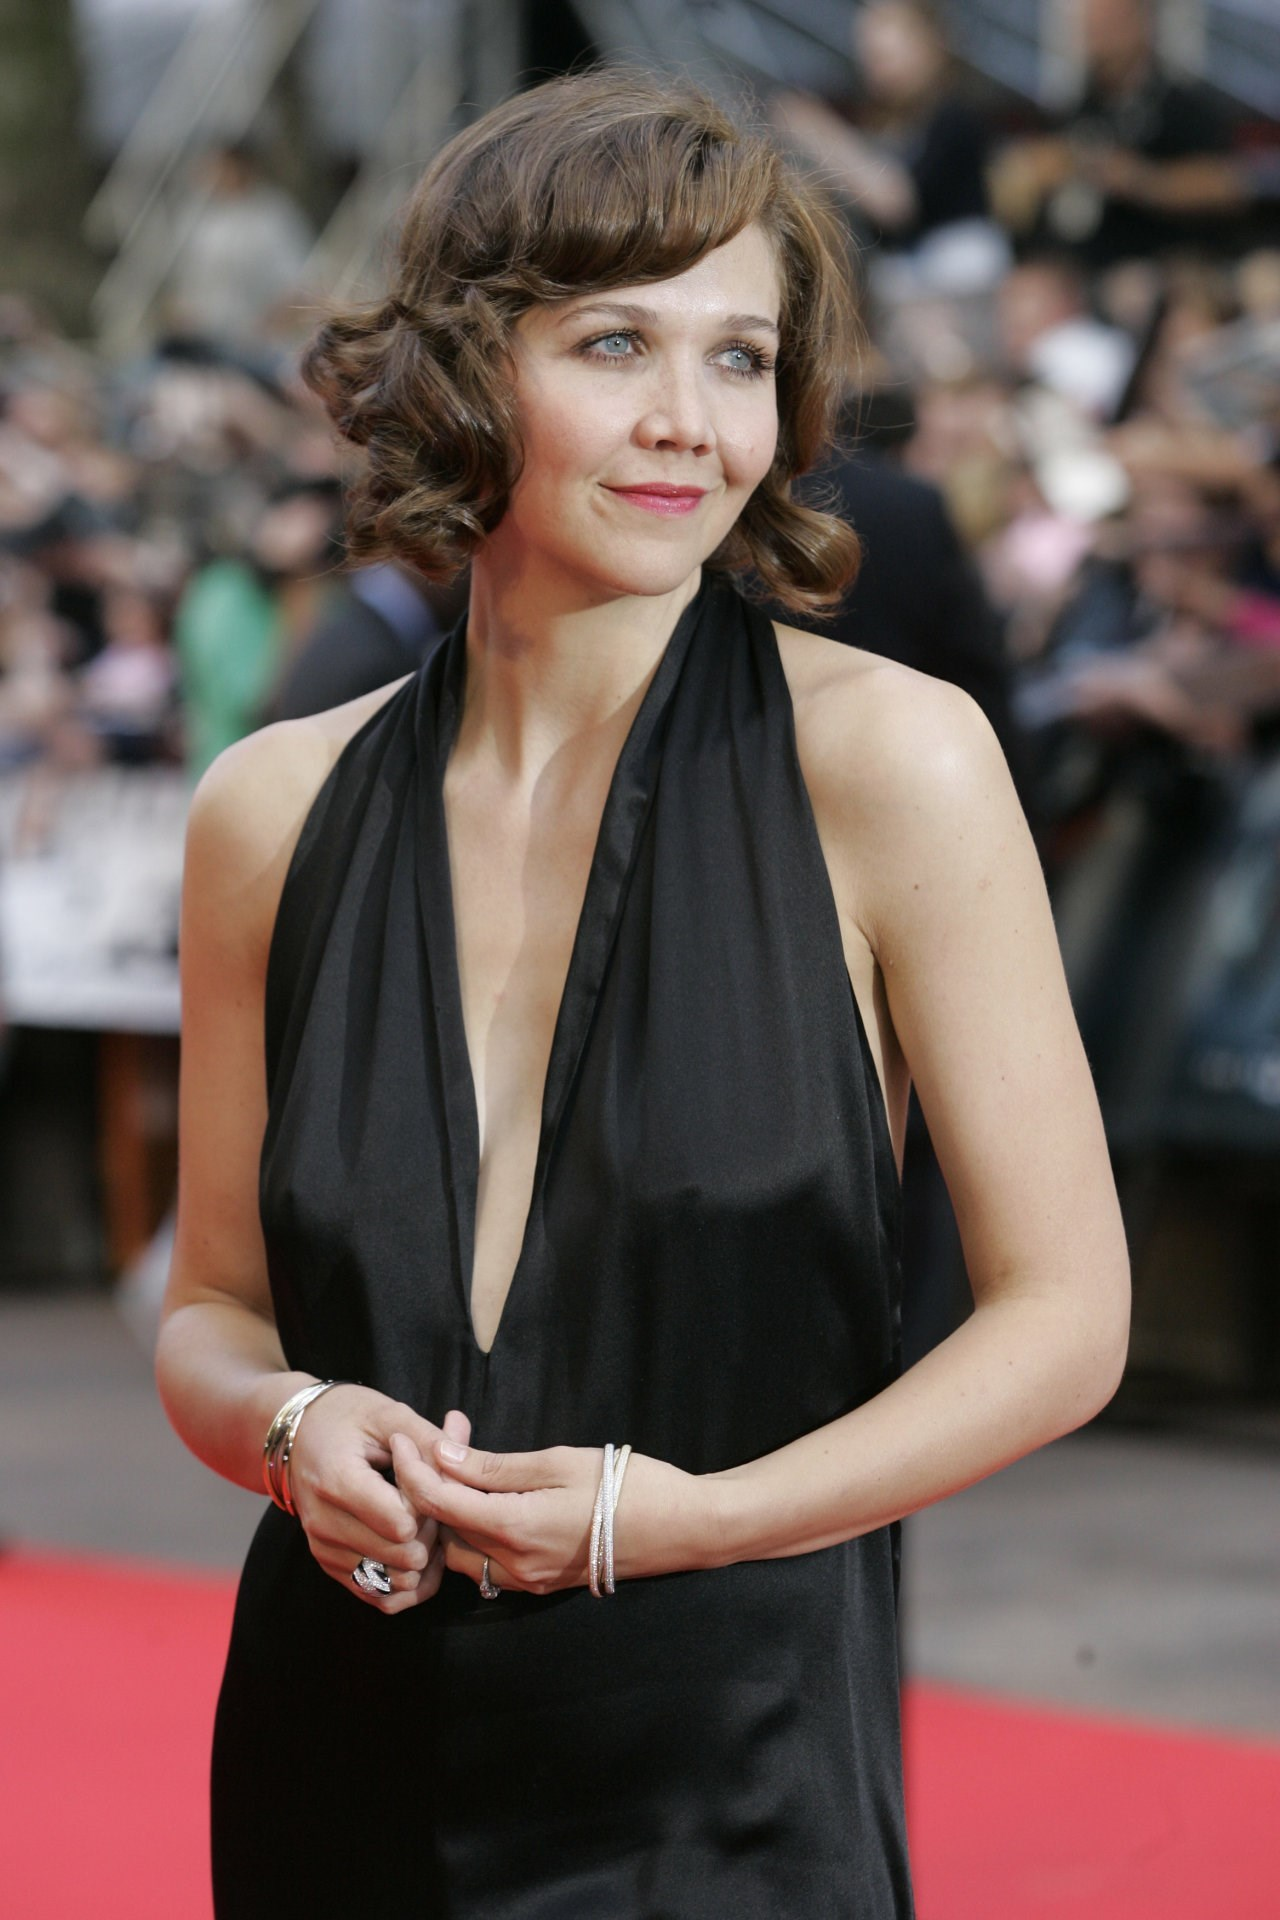 Maggie Gyllenhaal | Known people - famous people news and ... Maggie Gyllenhaal